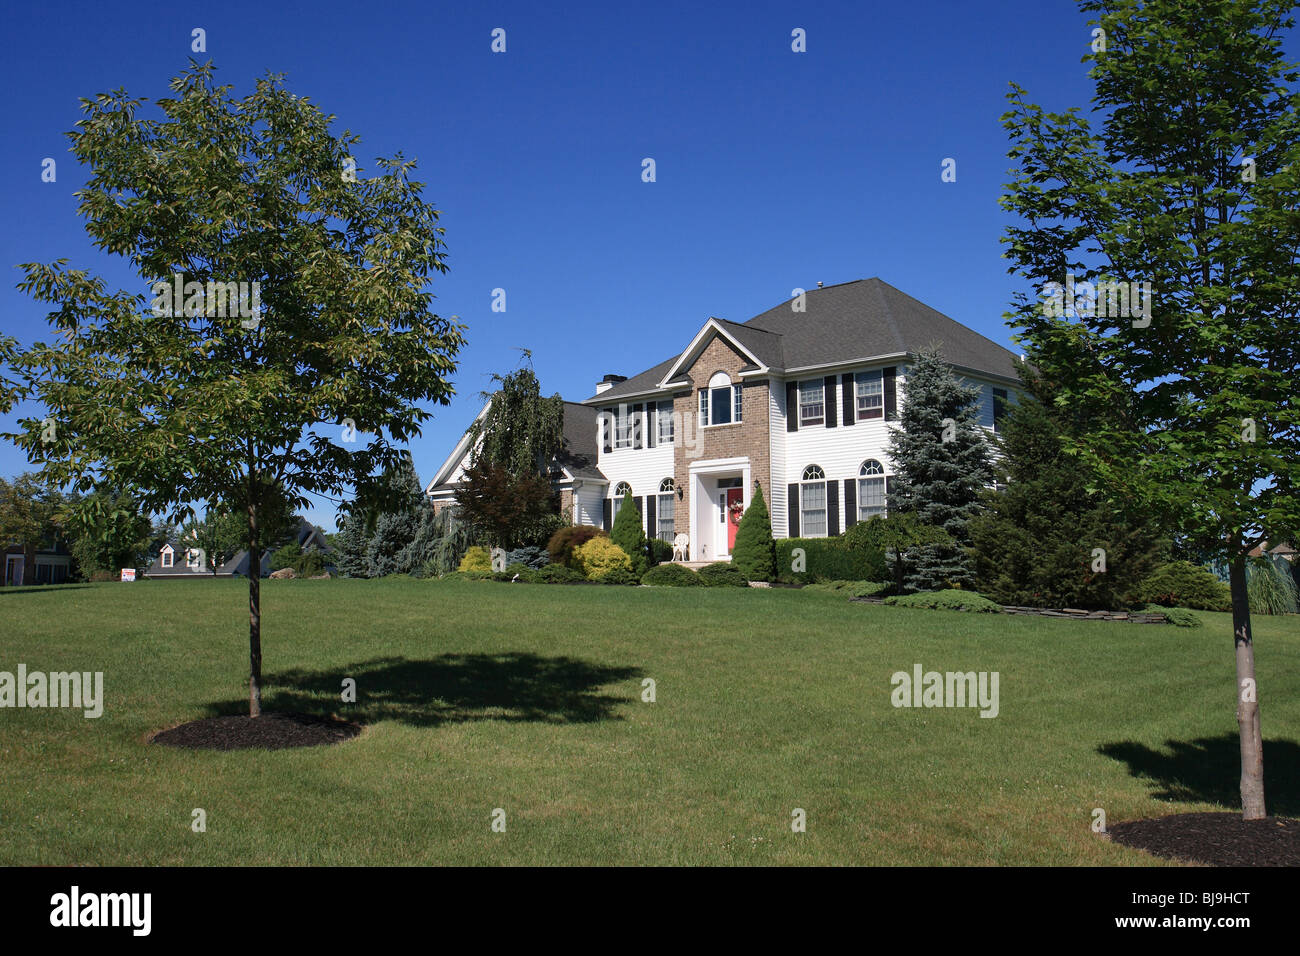 Single family house with a big land plot, USA Stock Photo